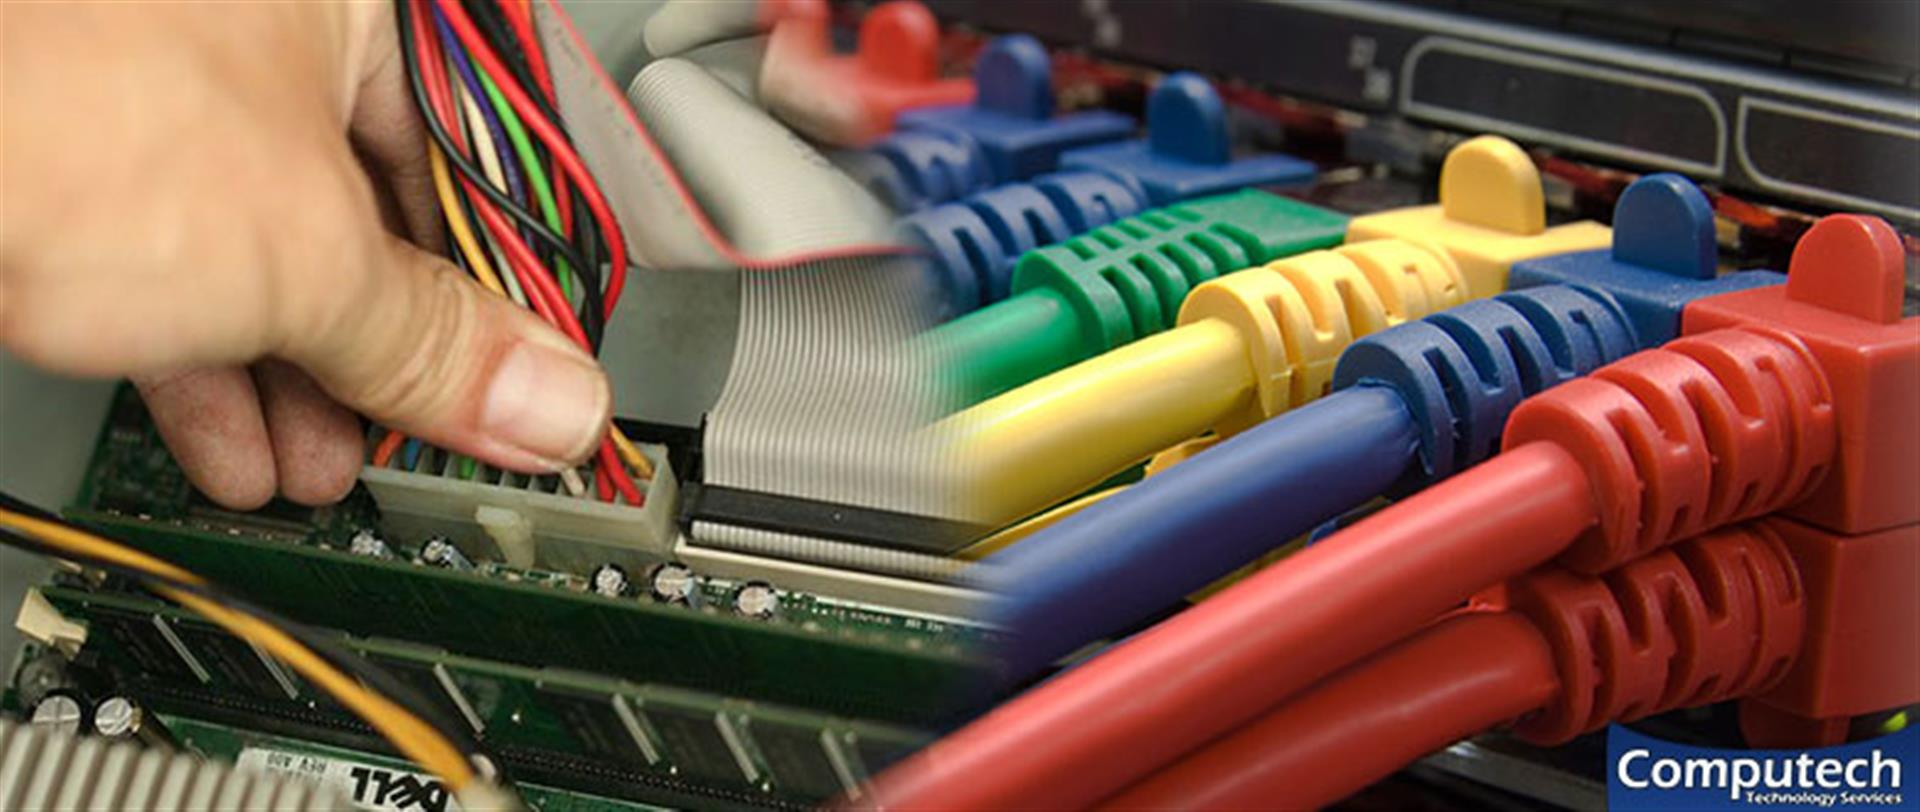 Newport Tennessee On-Site PC and Printer Repairs, Networking, Voice & Data Cabling Solutions